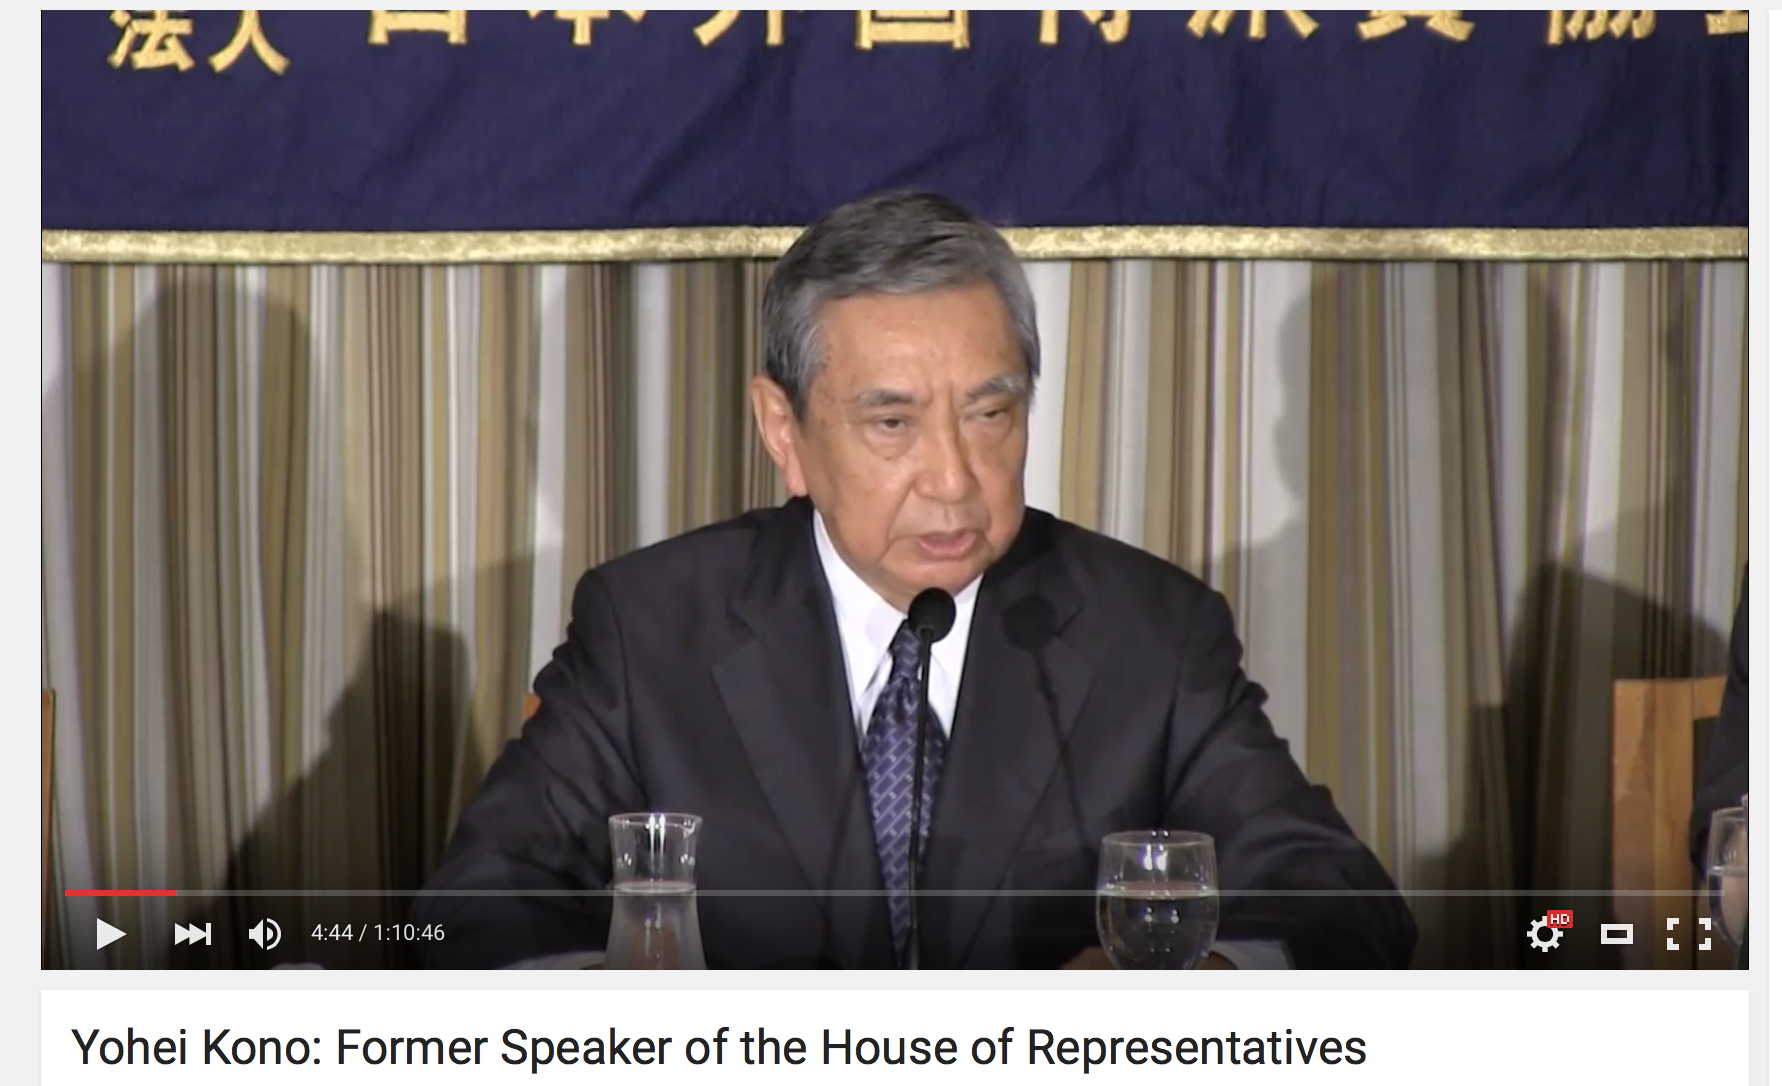 Kono Makes A Discomforting Statement on The Comfort Women And Japan Diplomacy